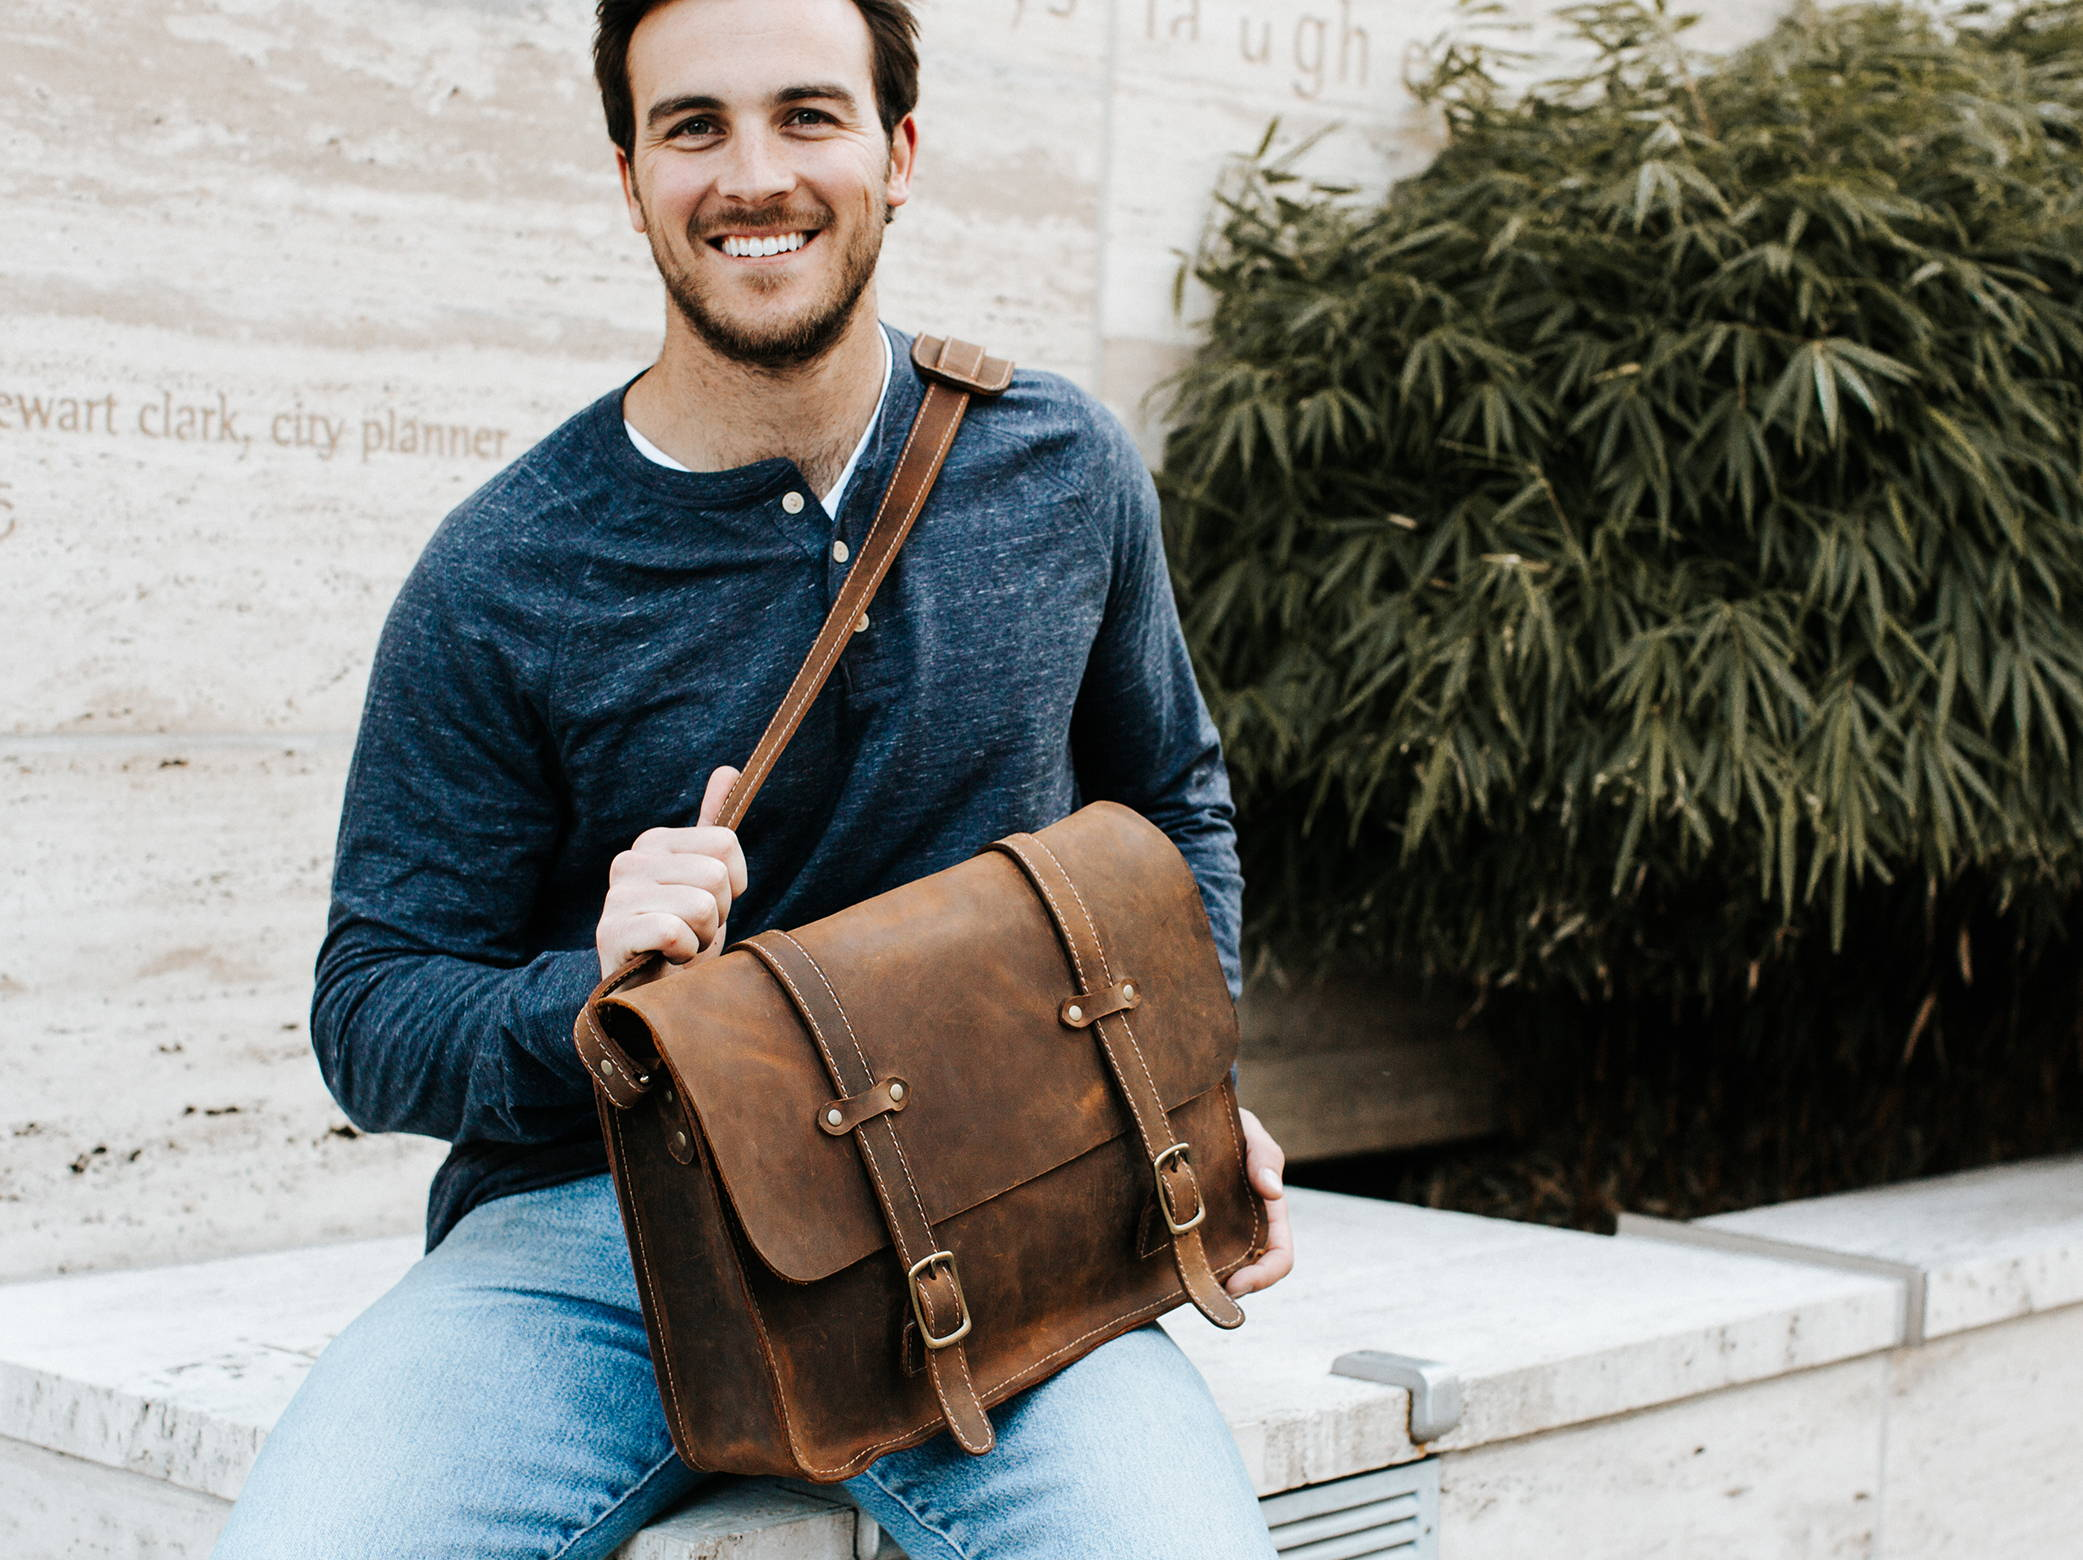 smiling man holding handmade leather messenger bag on lap